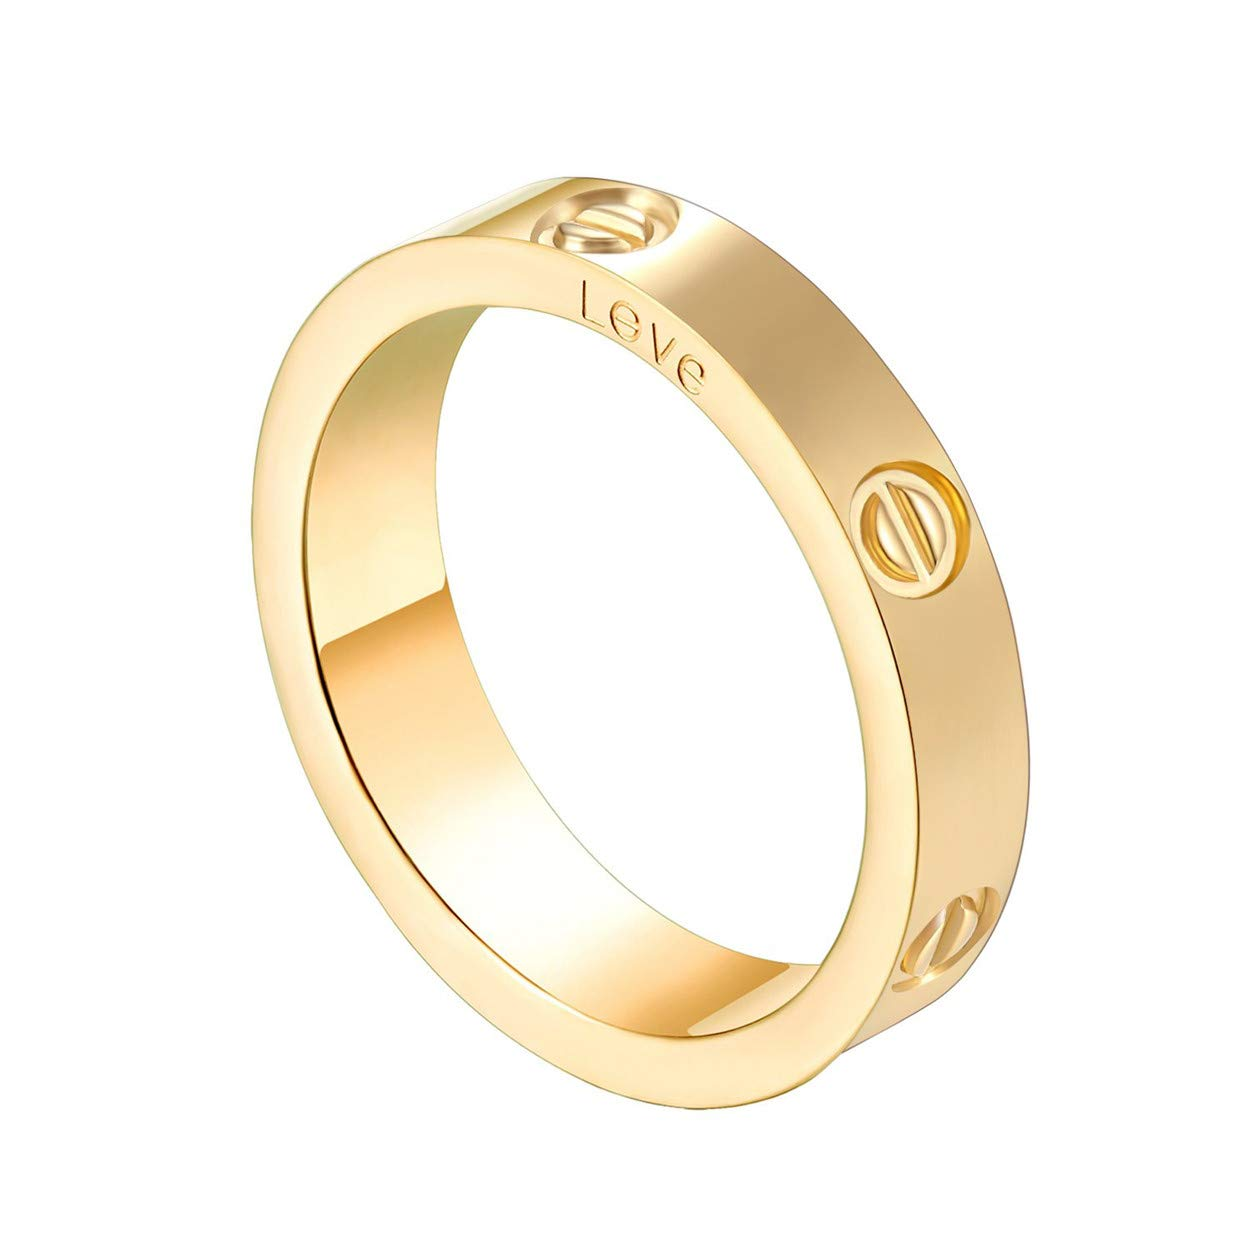 O-HIILILI Gold Love Screw Ring Engagement Wedding Couples Band Titanium Stainless Steel Size 7